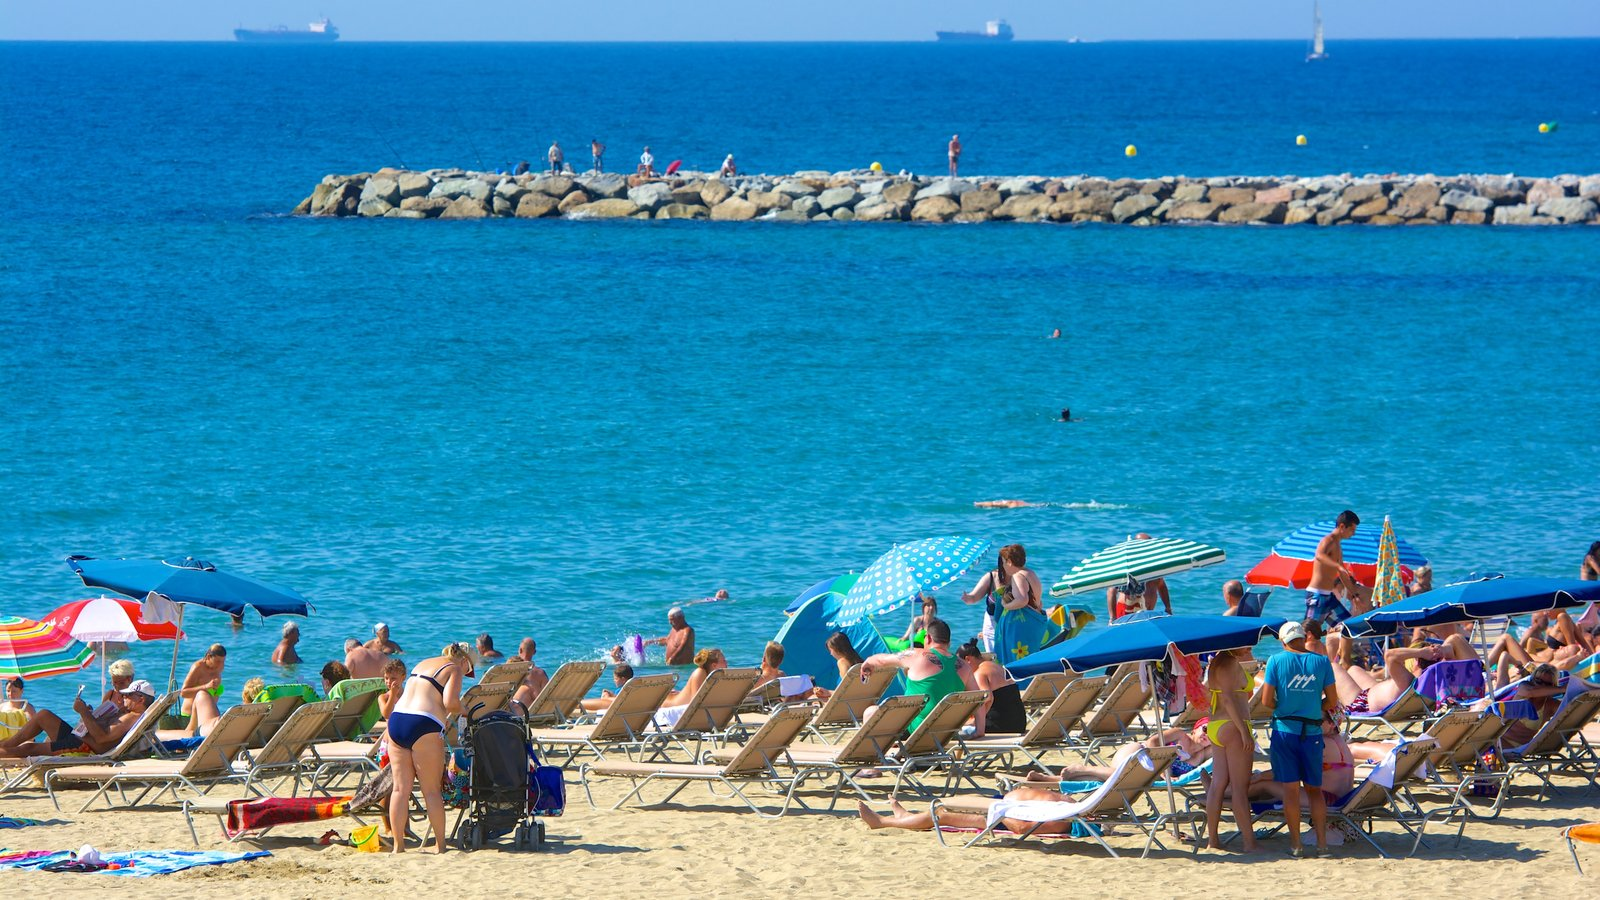 Barcelona featuring a sandy beach as well as a large group of people